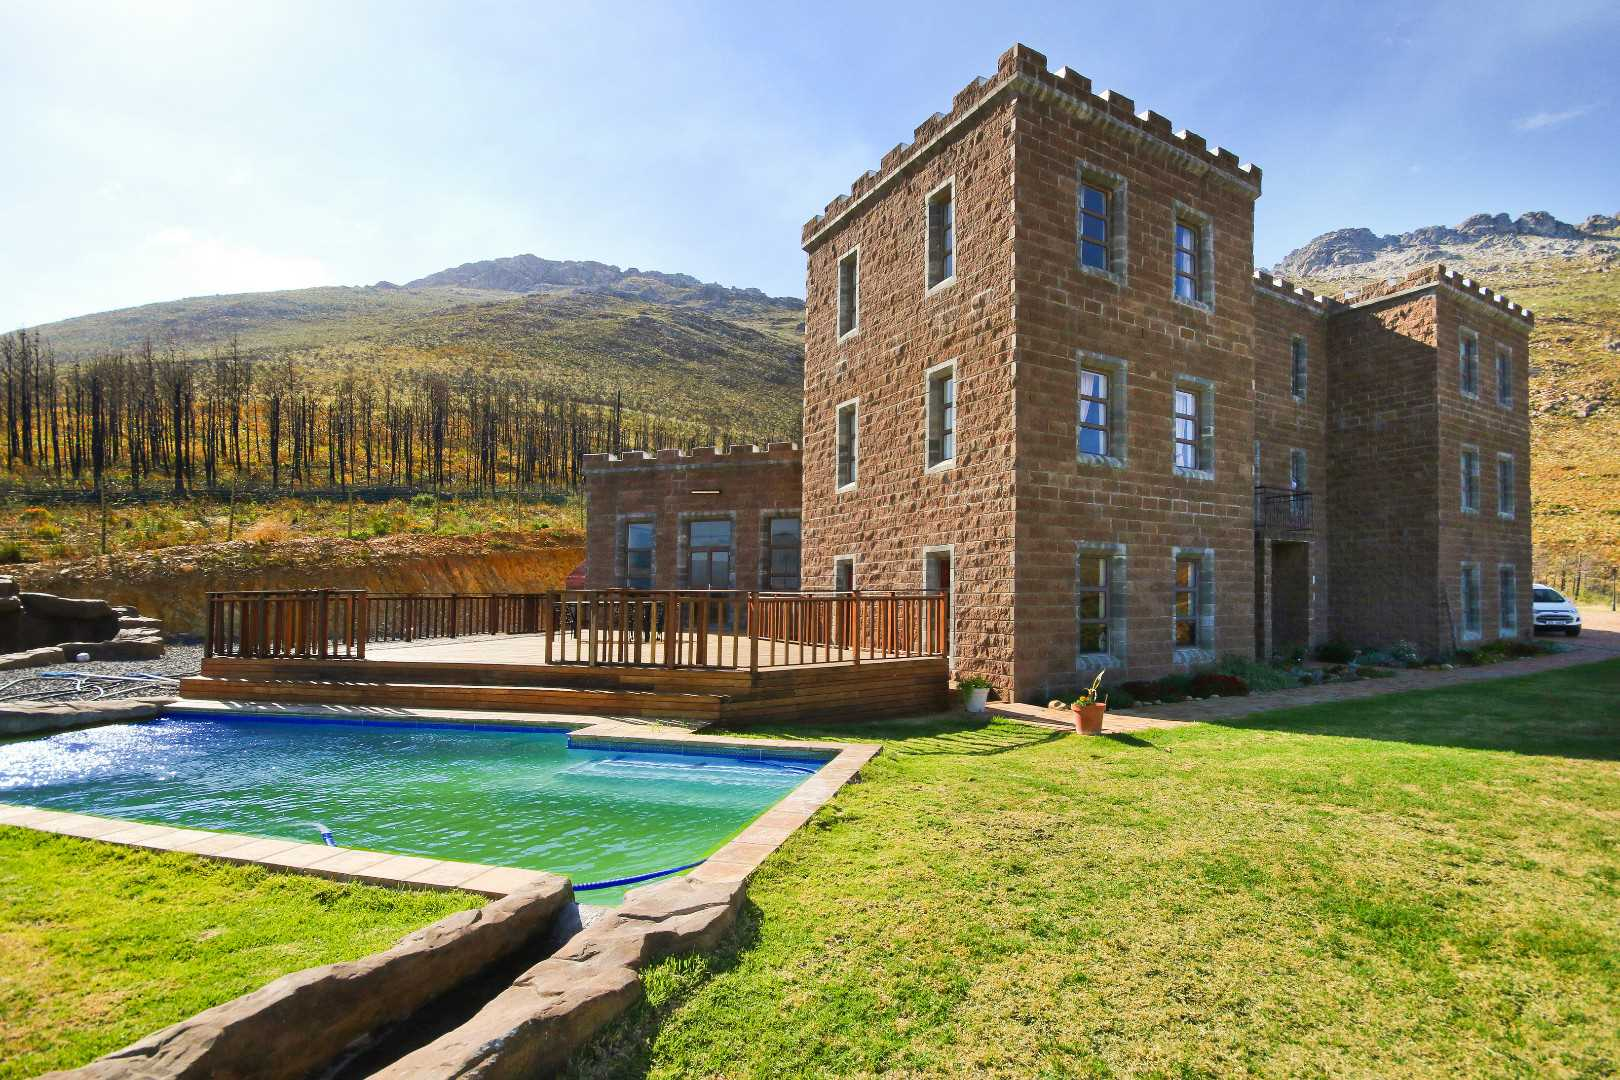 One-of-a-Kind Castle on the Hottentots Holland Mountainside?